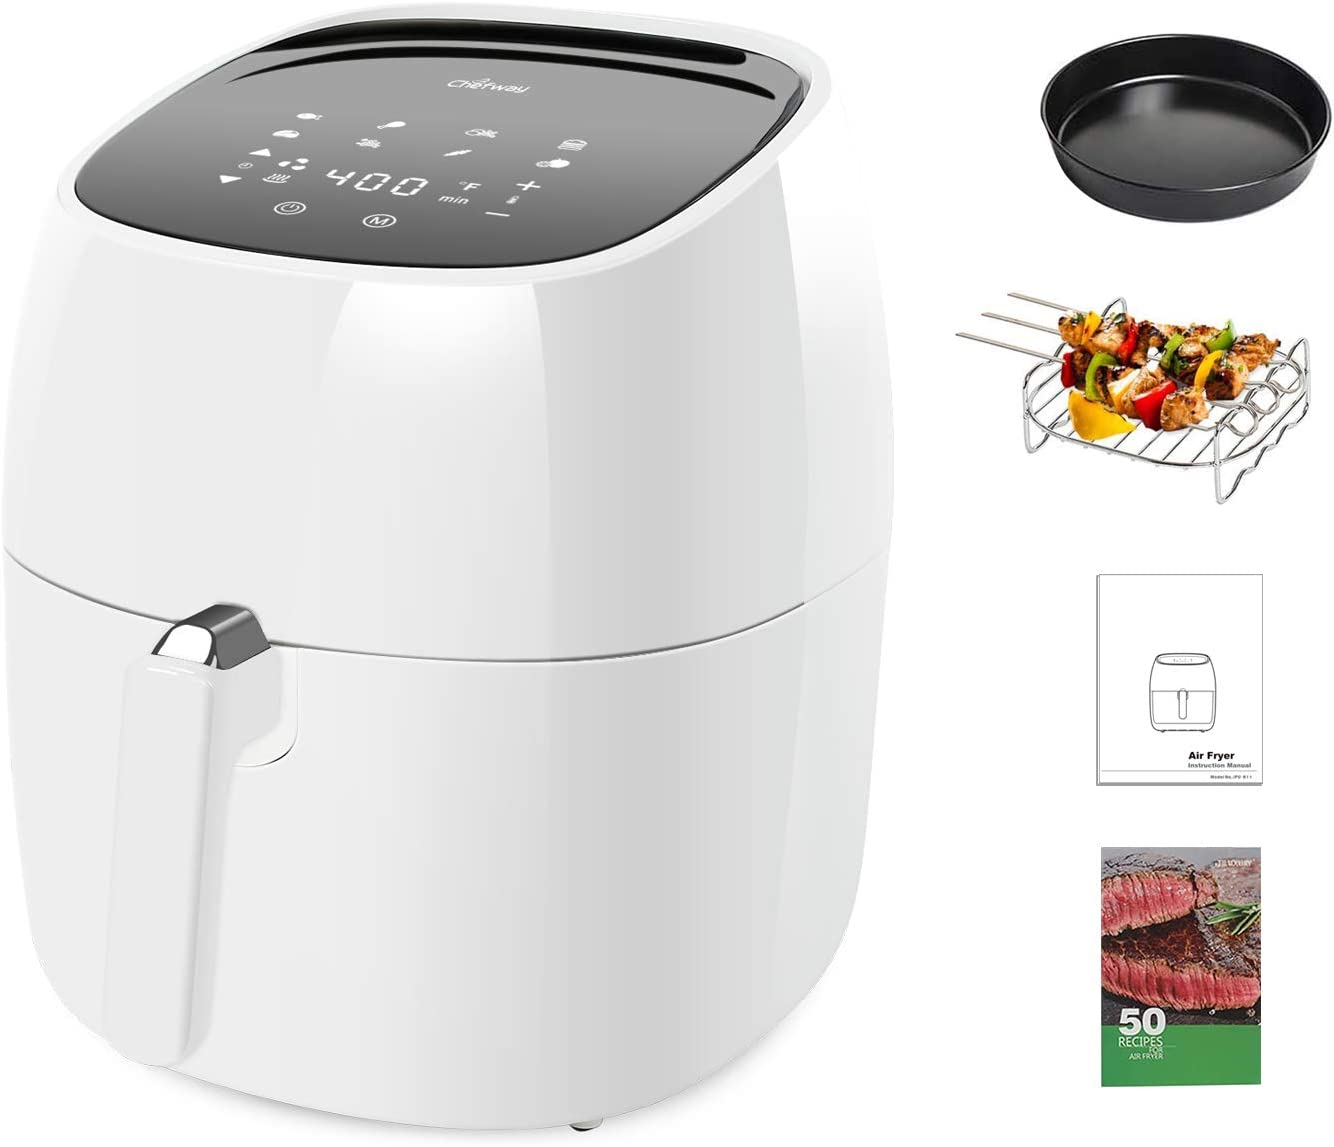 Chefway Air Fryer, 7.5 Quart Electric Hot Air Fryers Oven Oilless Cooker with LCD Digital Screen and Nonstick Frying Pot,1700W 8 in 1 Large Fast Hot Oven & Oiless Cooker,Fry/Roast/Bake/Dehydrate,50 Recipe Cookbook, White